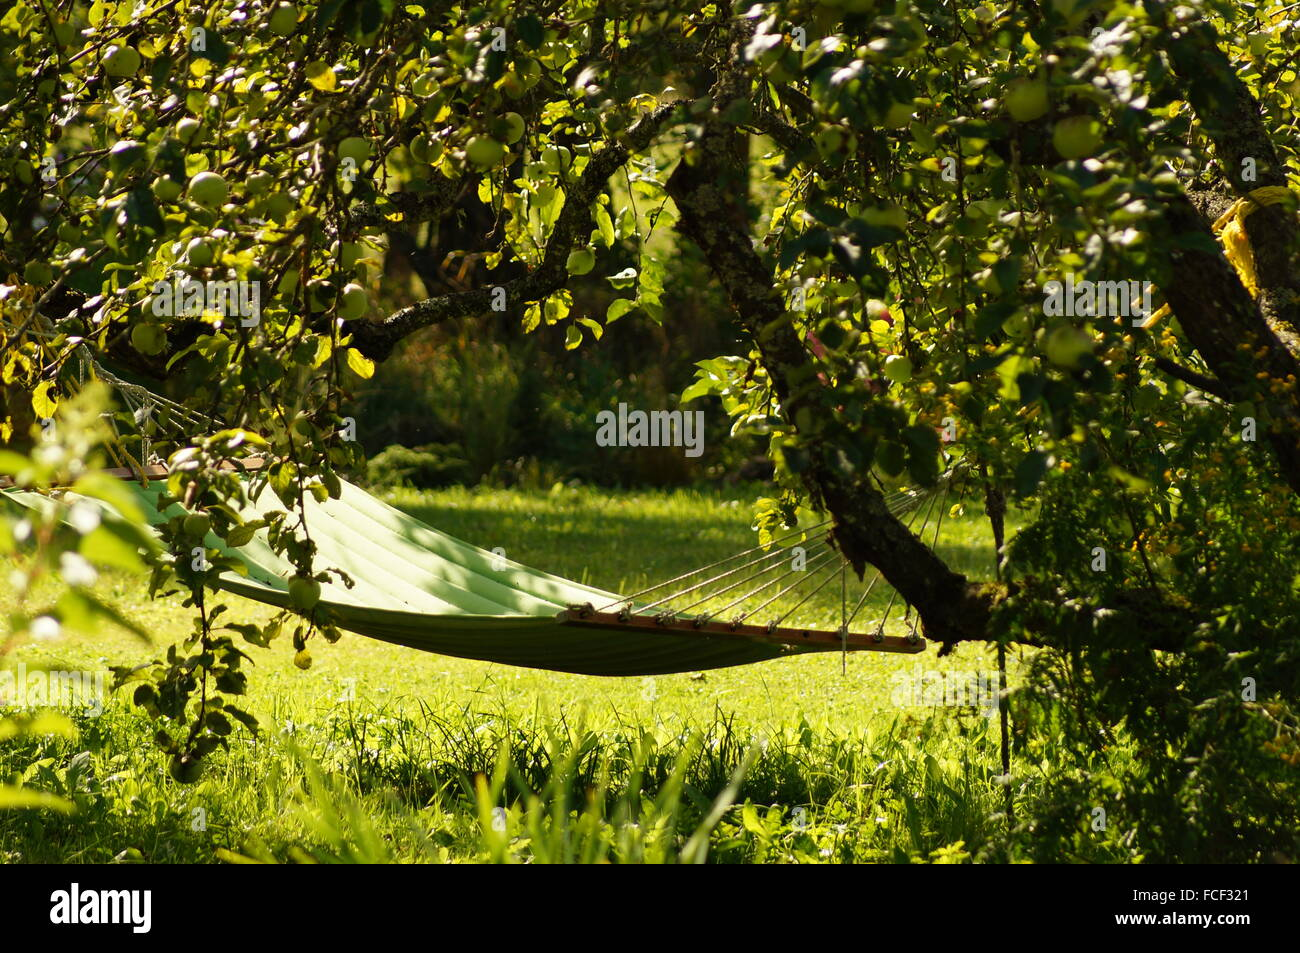 garden of rest stockfotos garden of rest bilder alamy. Black Bedroom Furniture Sets. Home Design Ideas